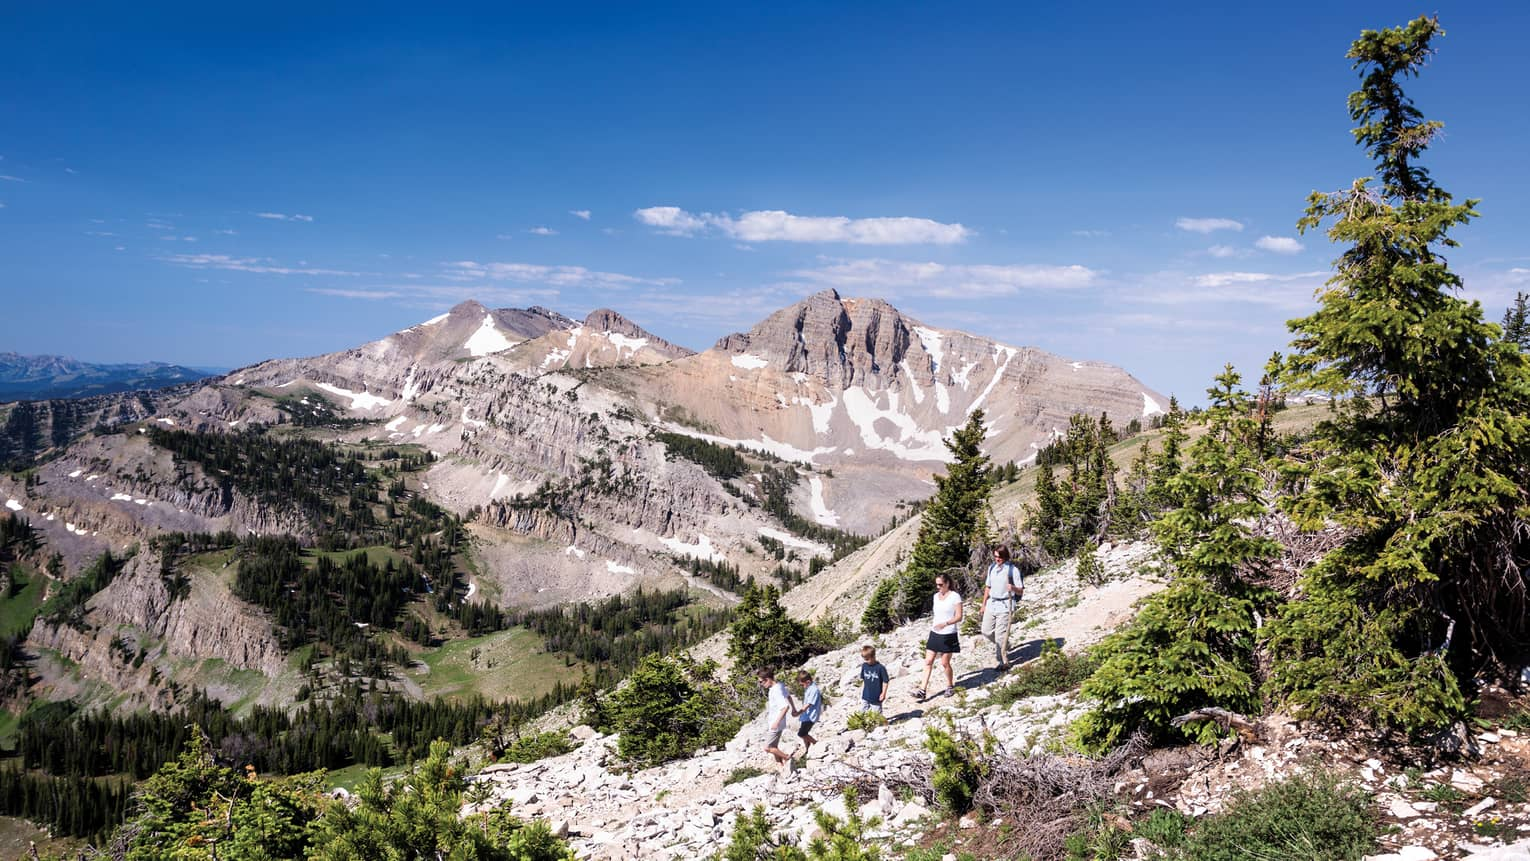 Family hikes along rocky path on mountain, sweeping views of mountain range